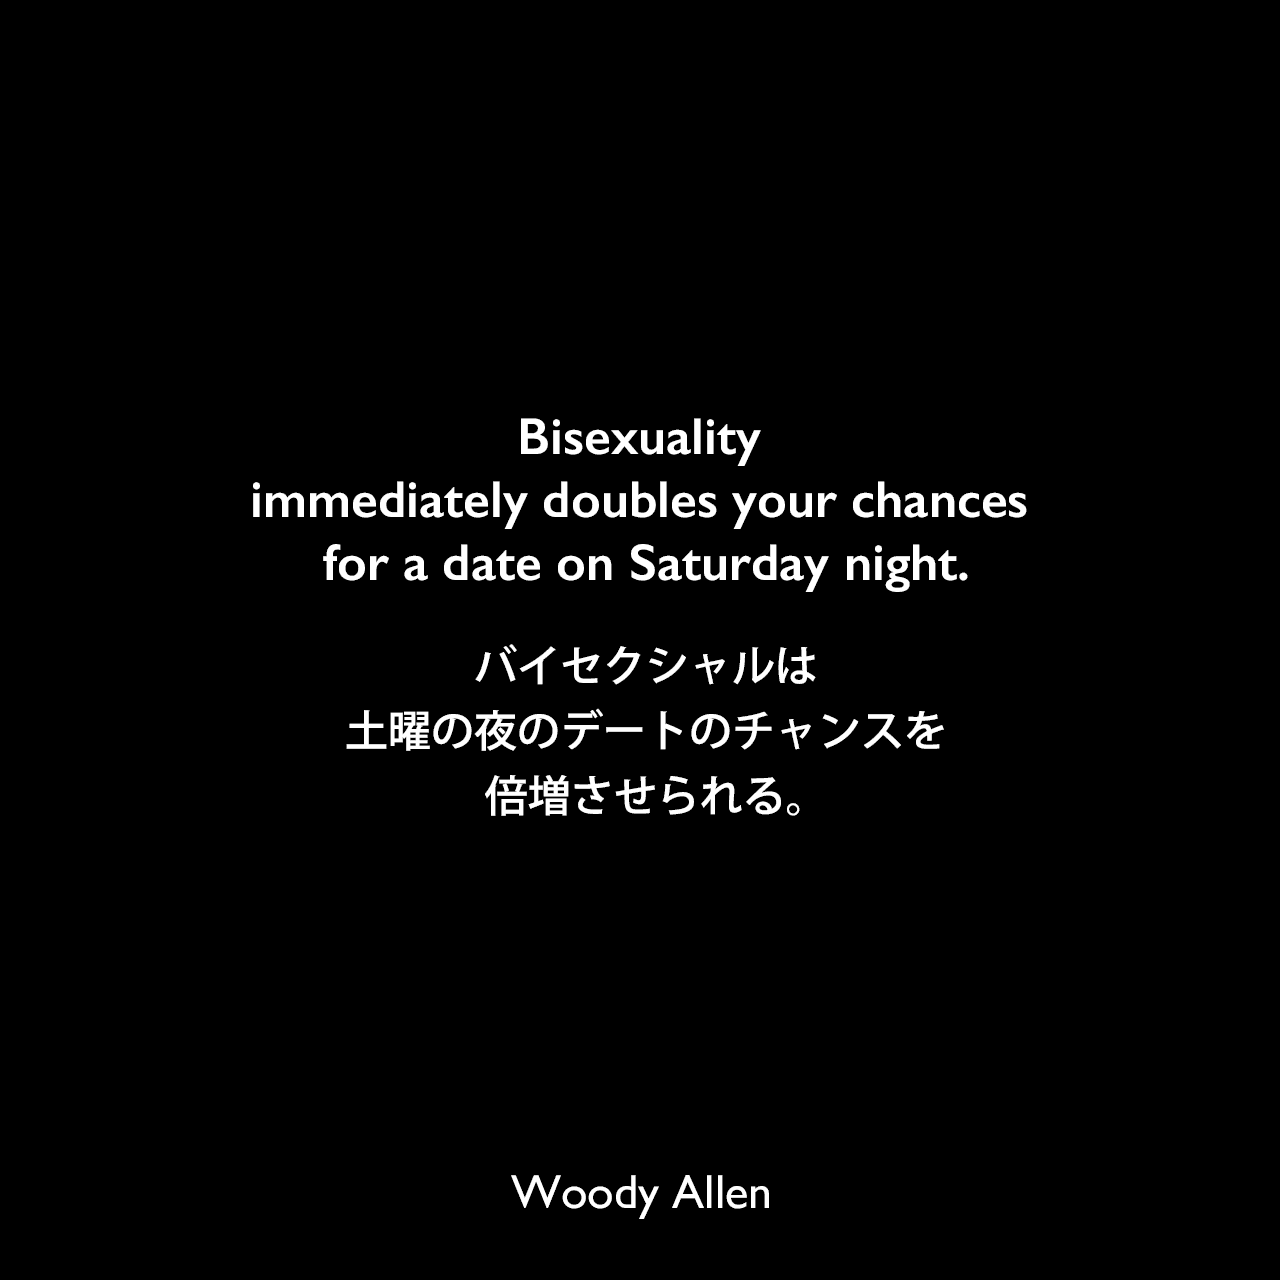 Bisexuality immediately doubles your chances for a date on Saturday night.バイセクシャルは、土曜の夜のデートのチャンスを倍増させられる。Woody Allen